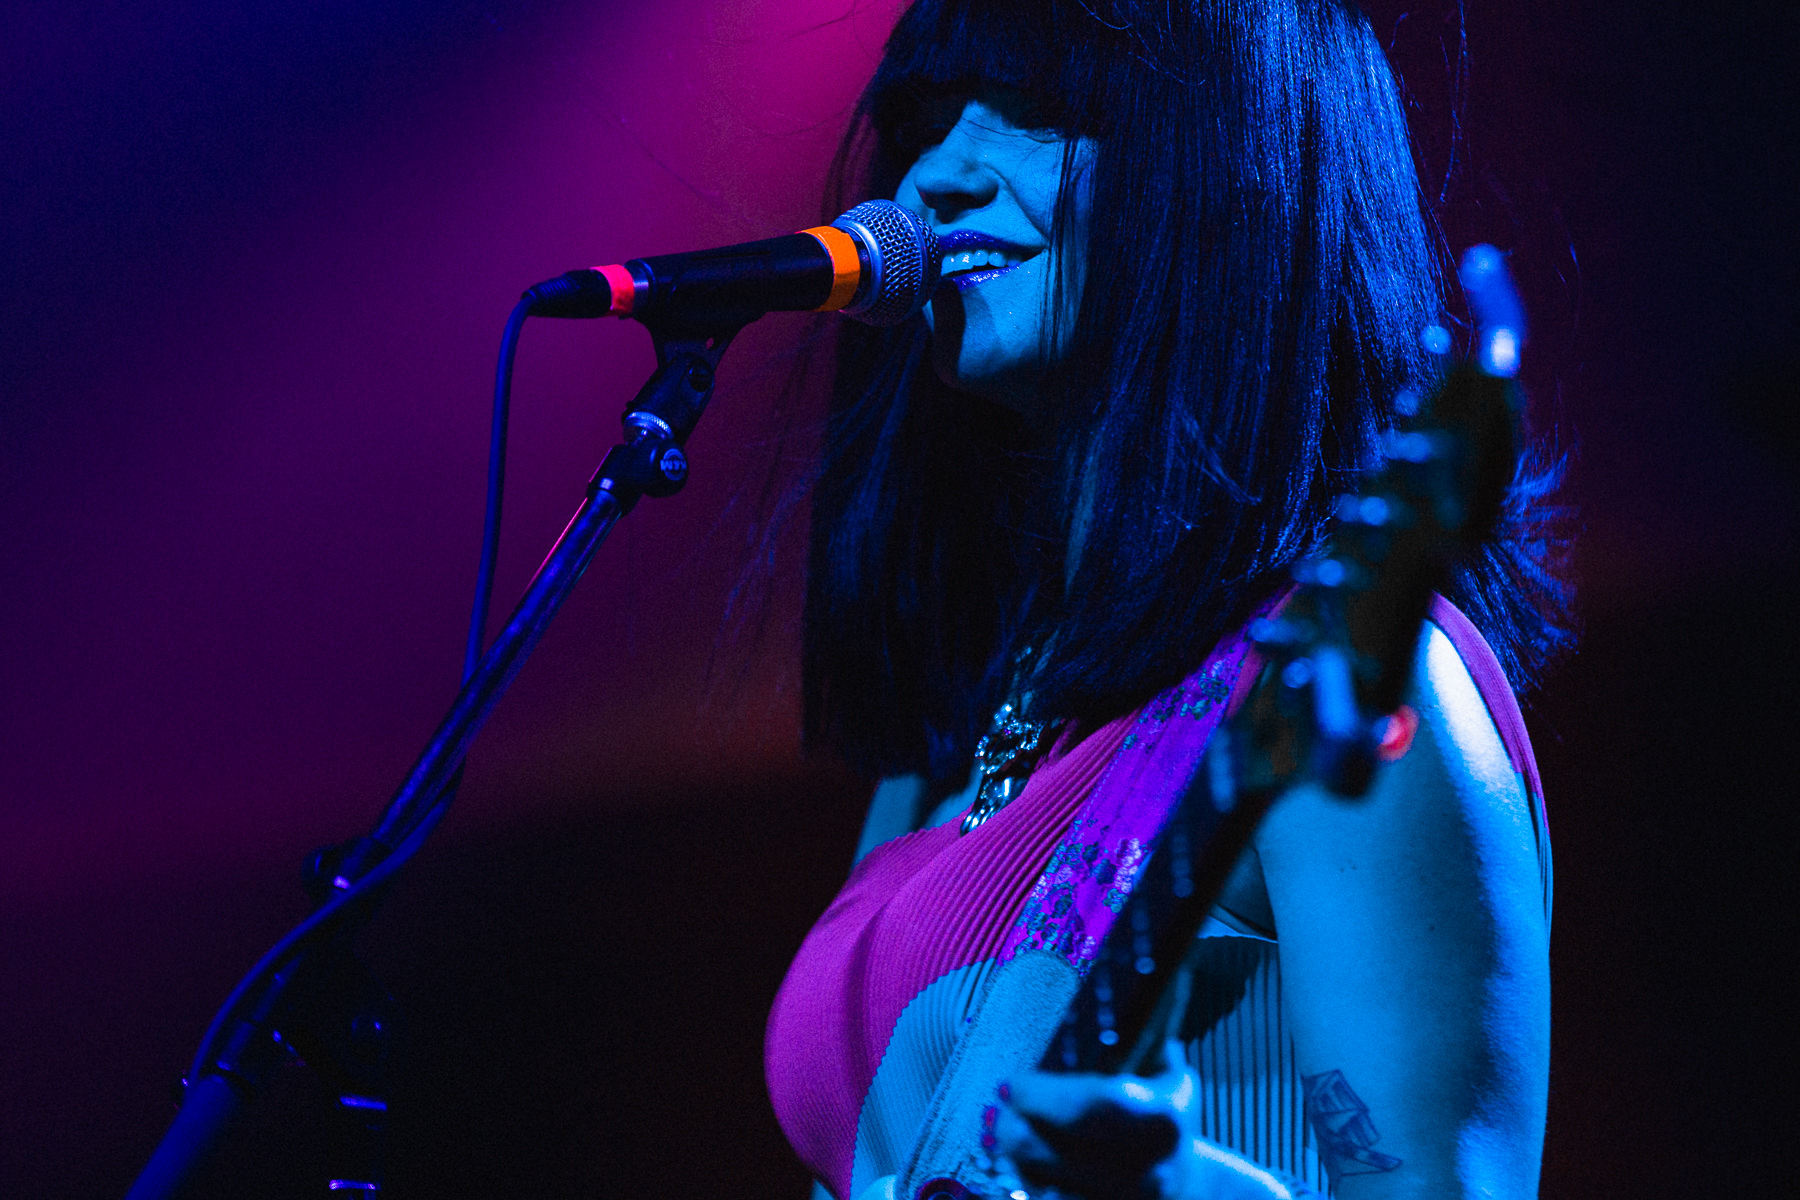 180326-kirby-gladstein-photograpy-khruangbin-concert-lodge-room-los-angeles-3123.jpg